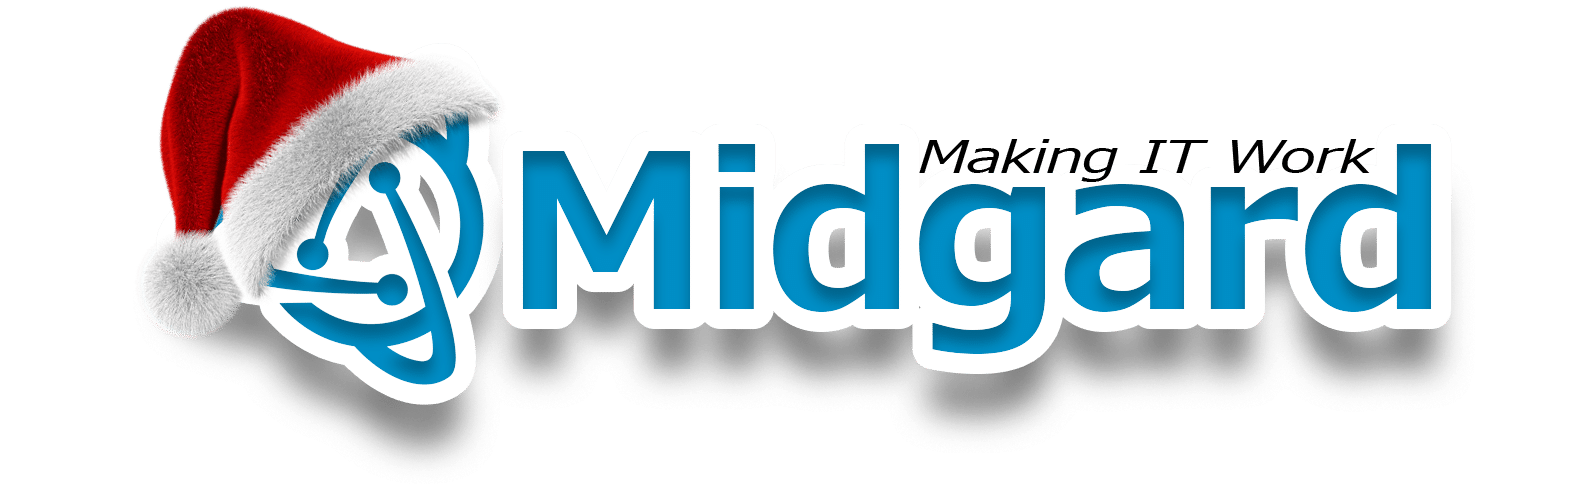 midgard-logo-colour-blue-shadow-christmas